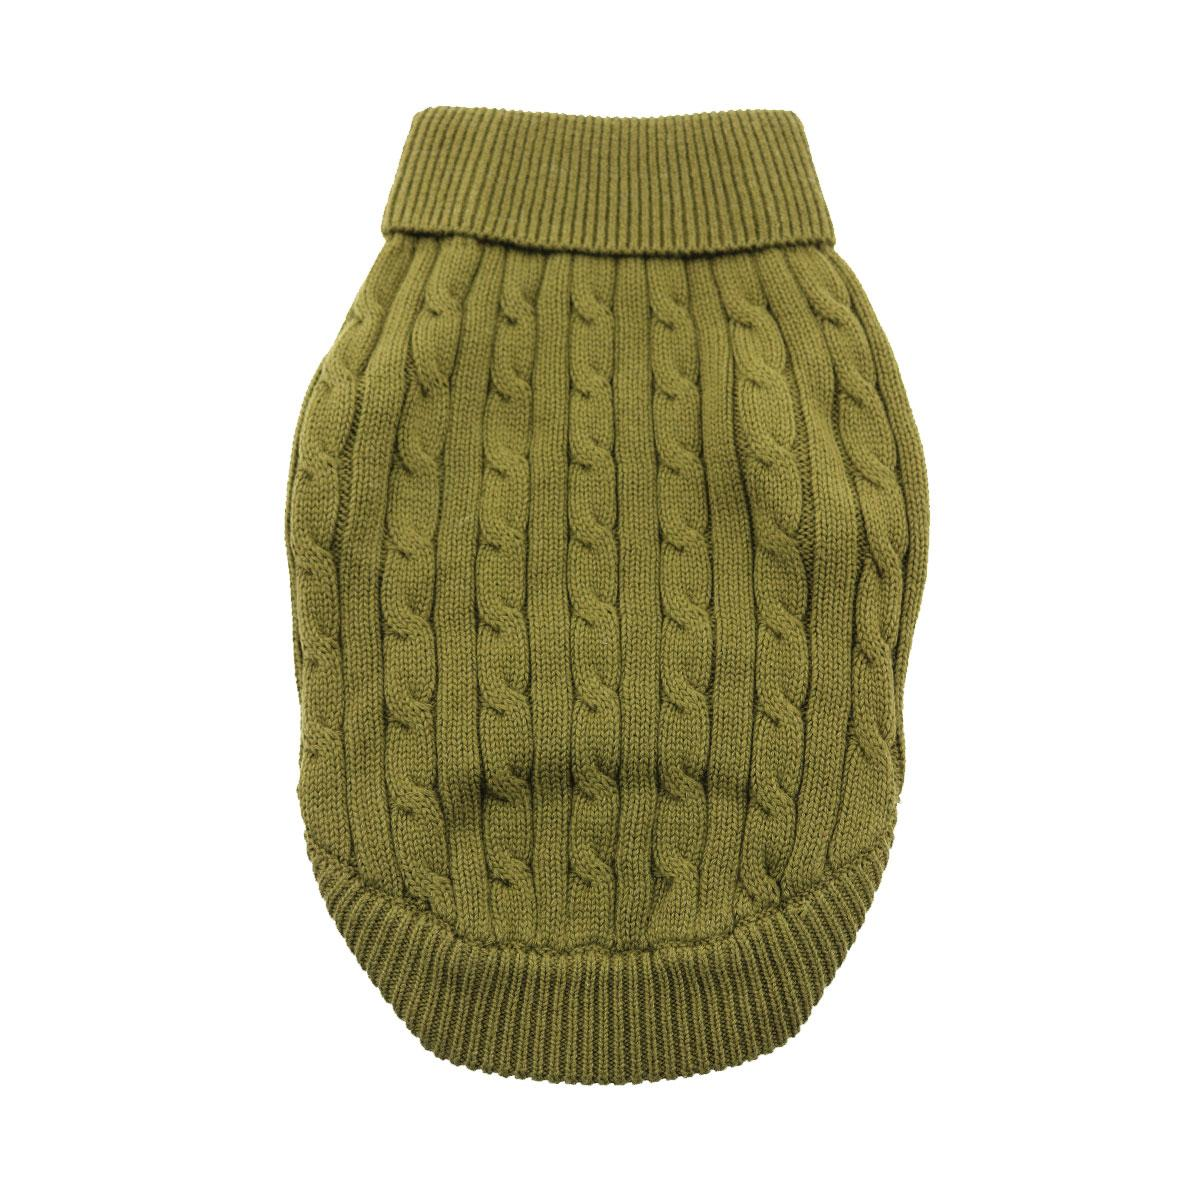 Doggie Design Cotton Dog Sweater, Cable Knit Herb Green, XX-Small